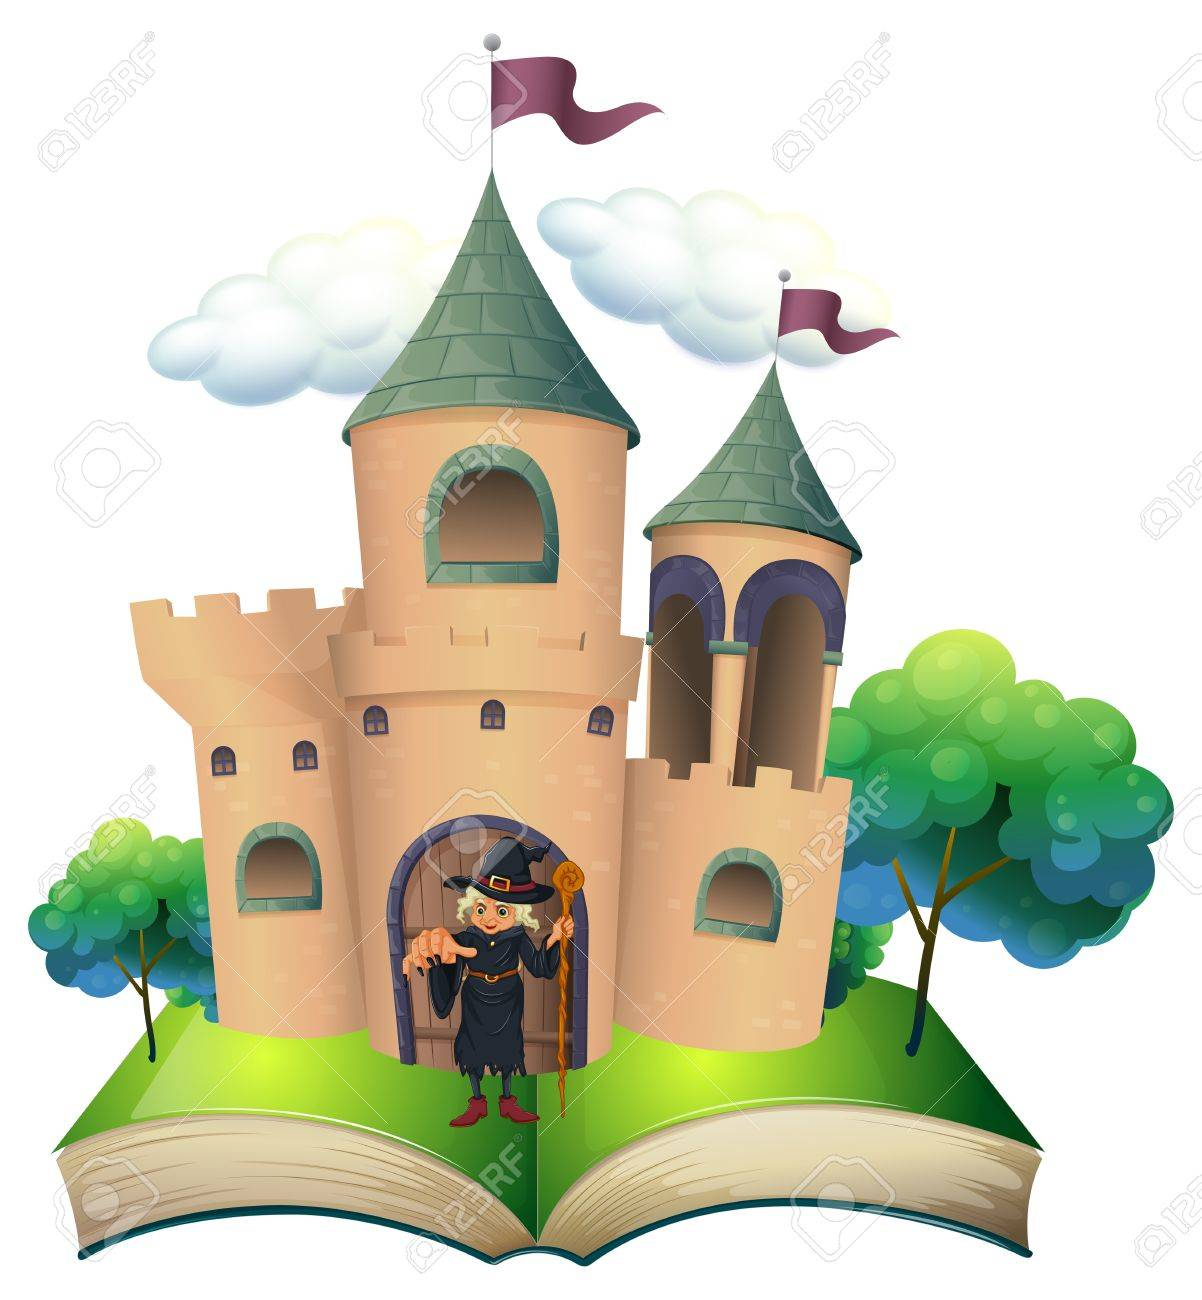 Illustration of a book with a castle and a witch on a white background Stock Vector - 20272995